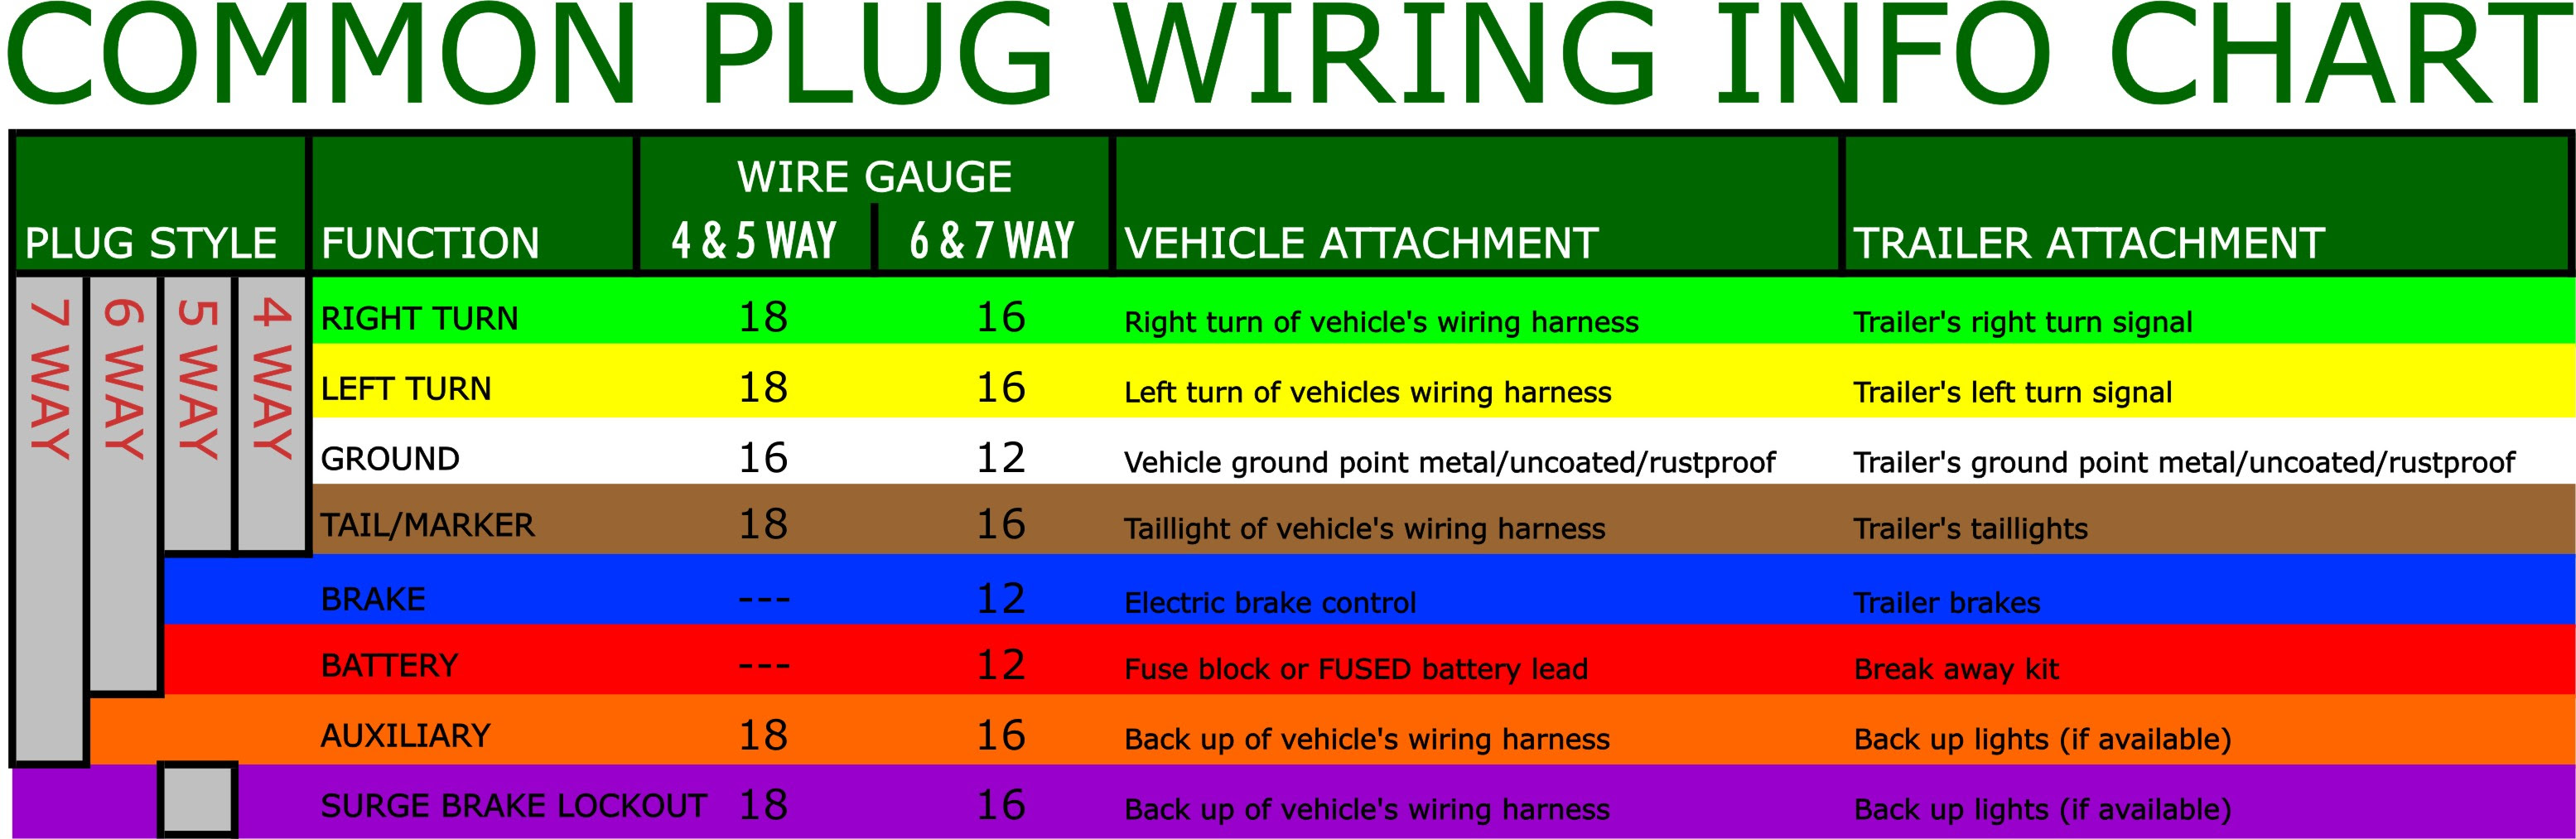 trailer wiring colour code image 5